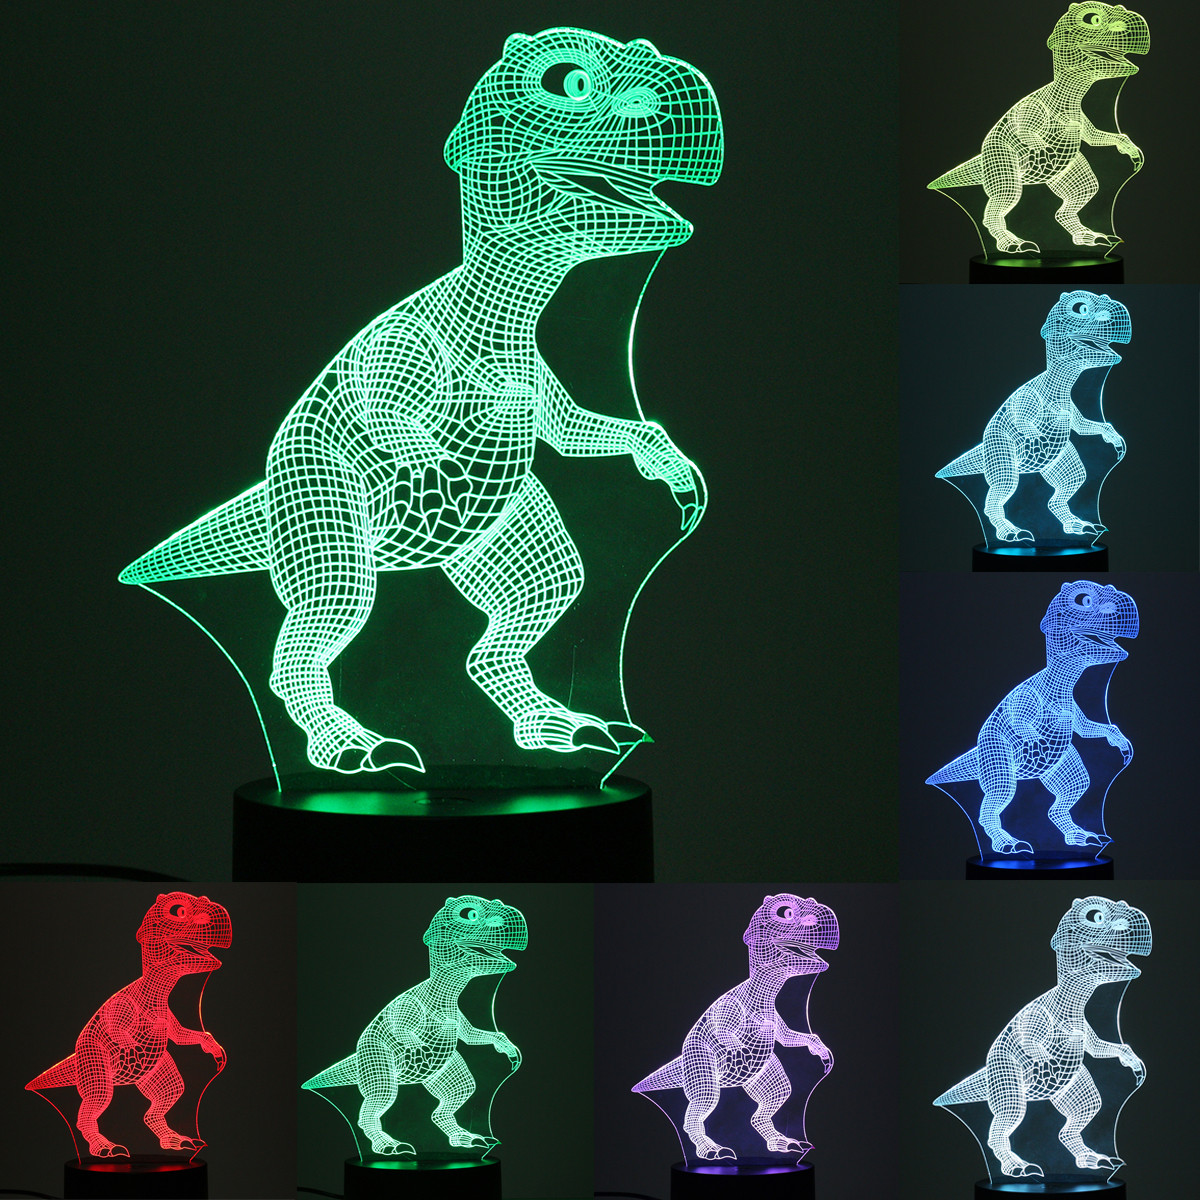 Star Wars Lamp Night Light 3D Illusion Lamp Desk for Living Room Lamps for Kids Room Home Decor Xmas Birthday Gifts Table Lamp with Remote Control 16 Color Changing Led Light Dinosaur